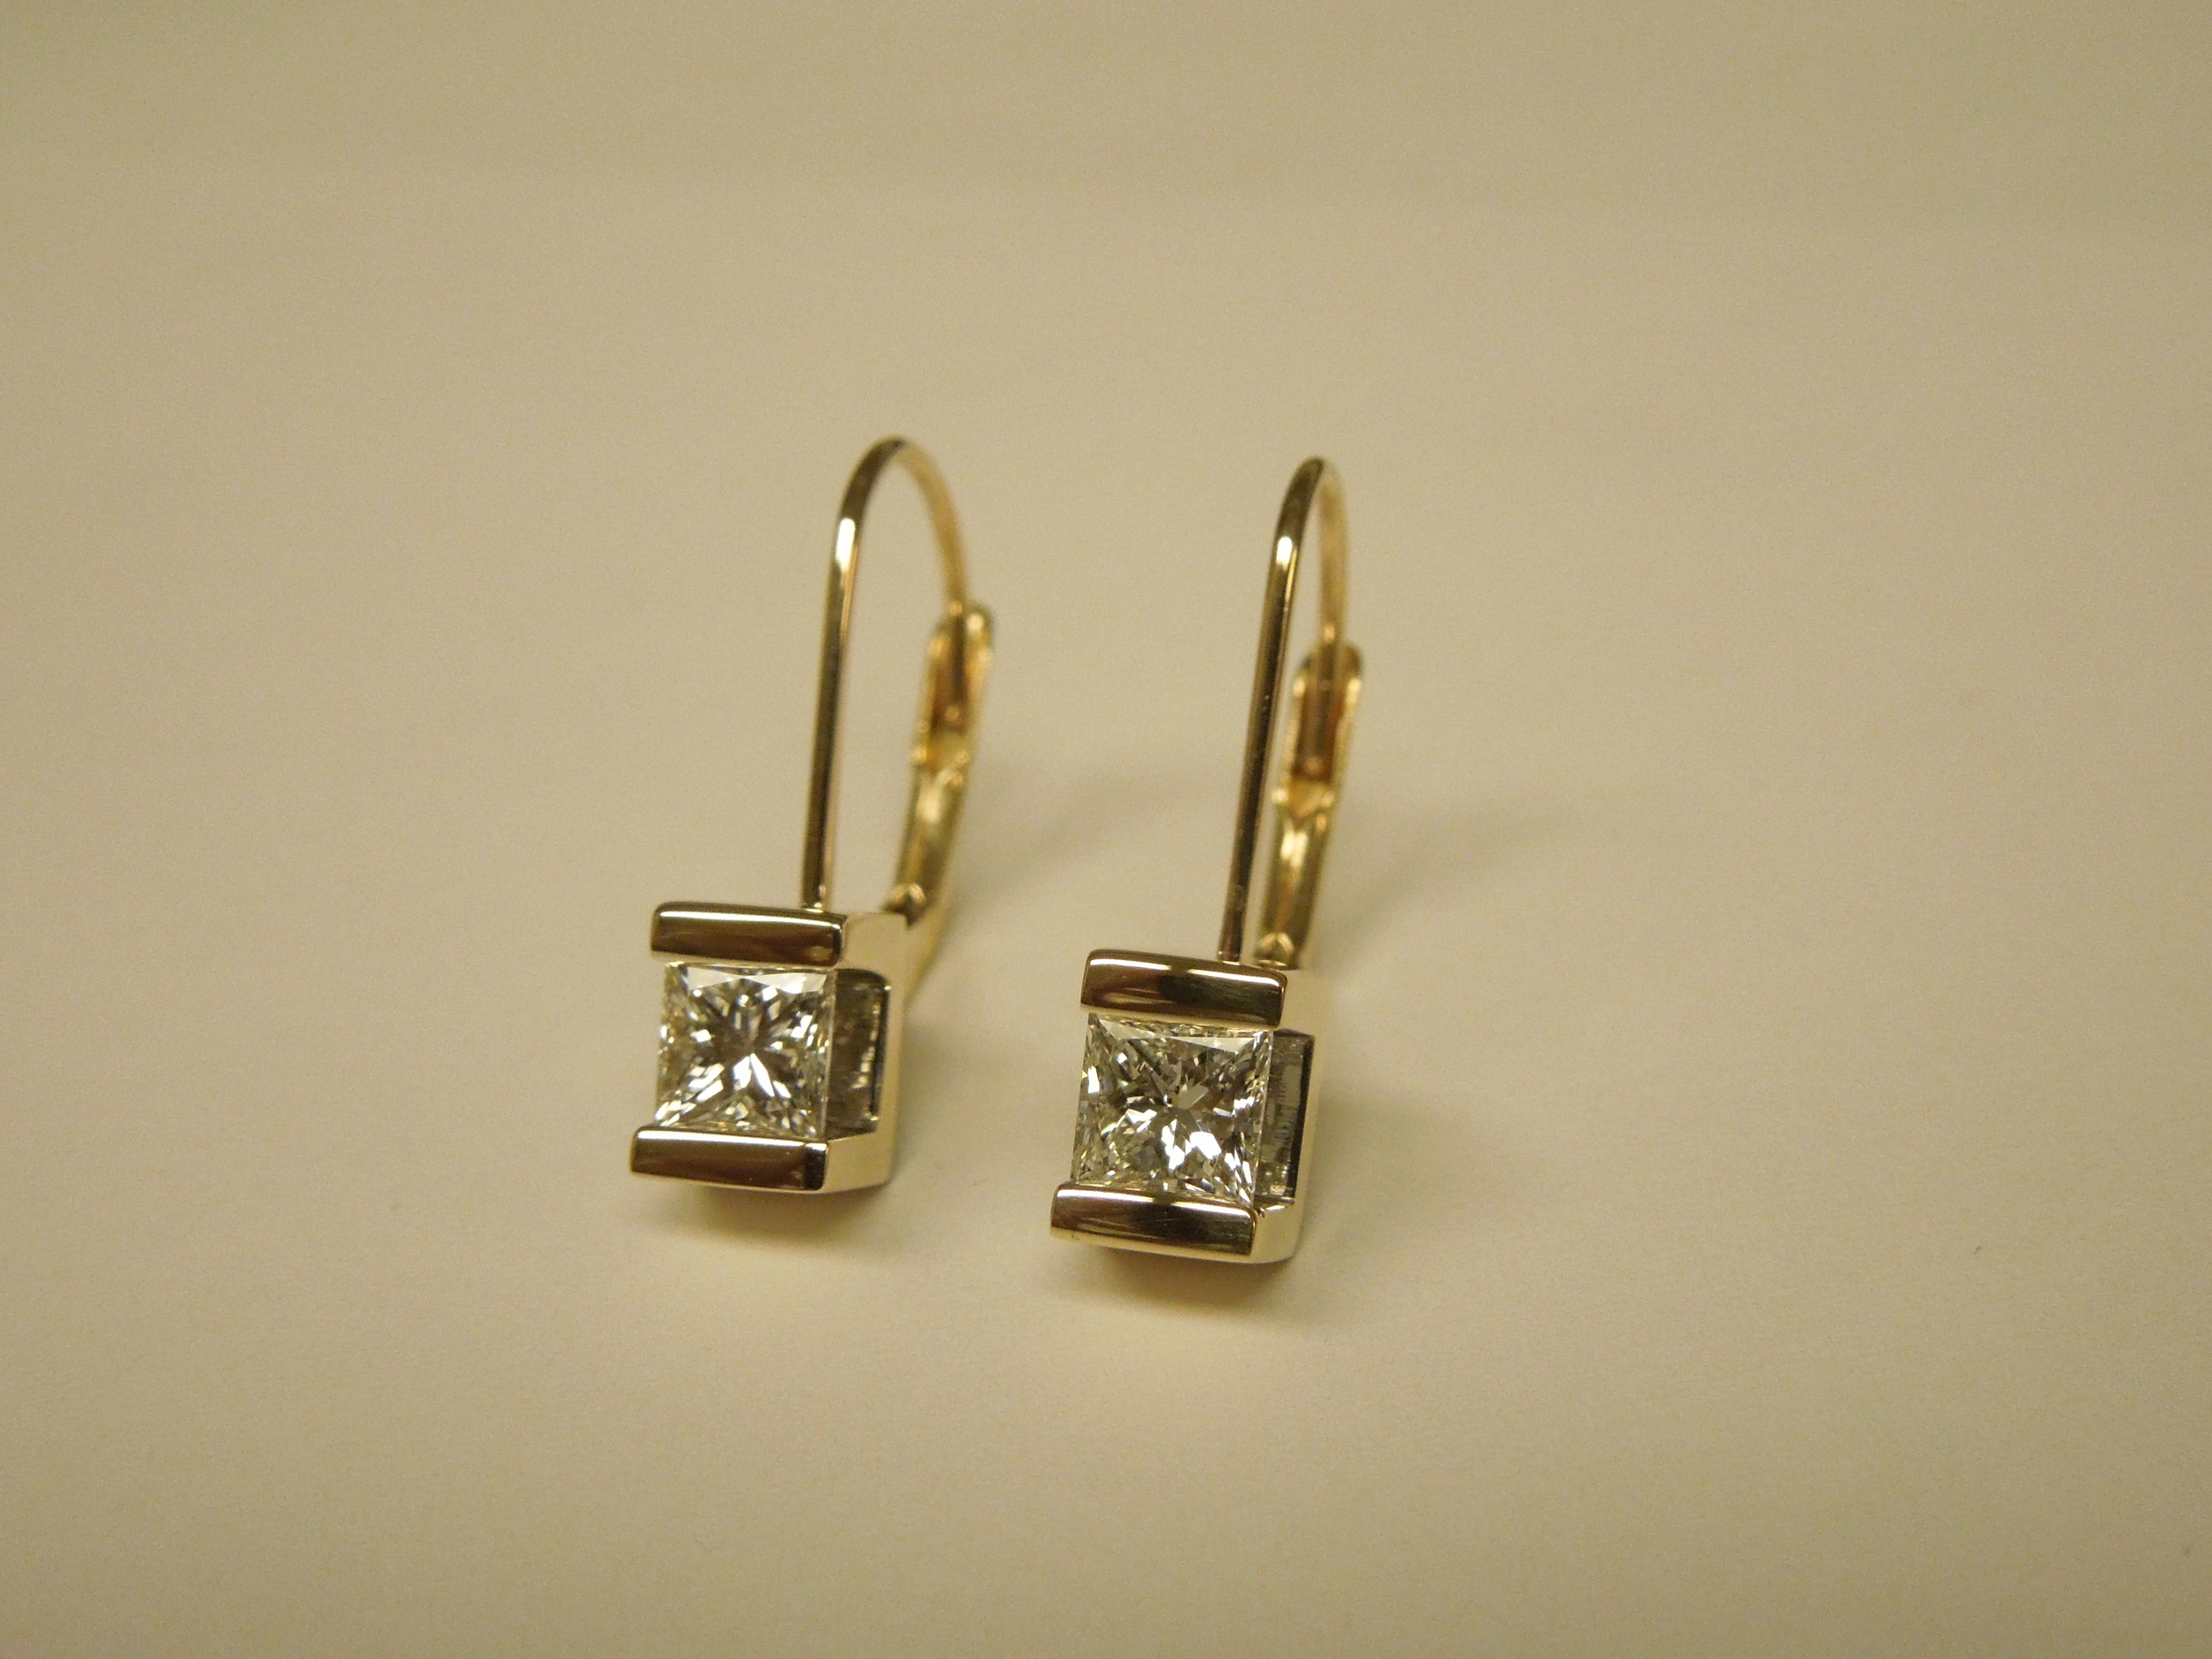 unique-custom-princess-cut-diamond-drop-earrings-yellow-gold-craft-revival-jewelry-store-grand-rapids